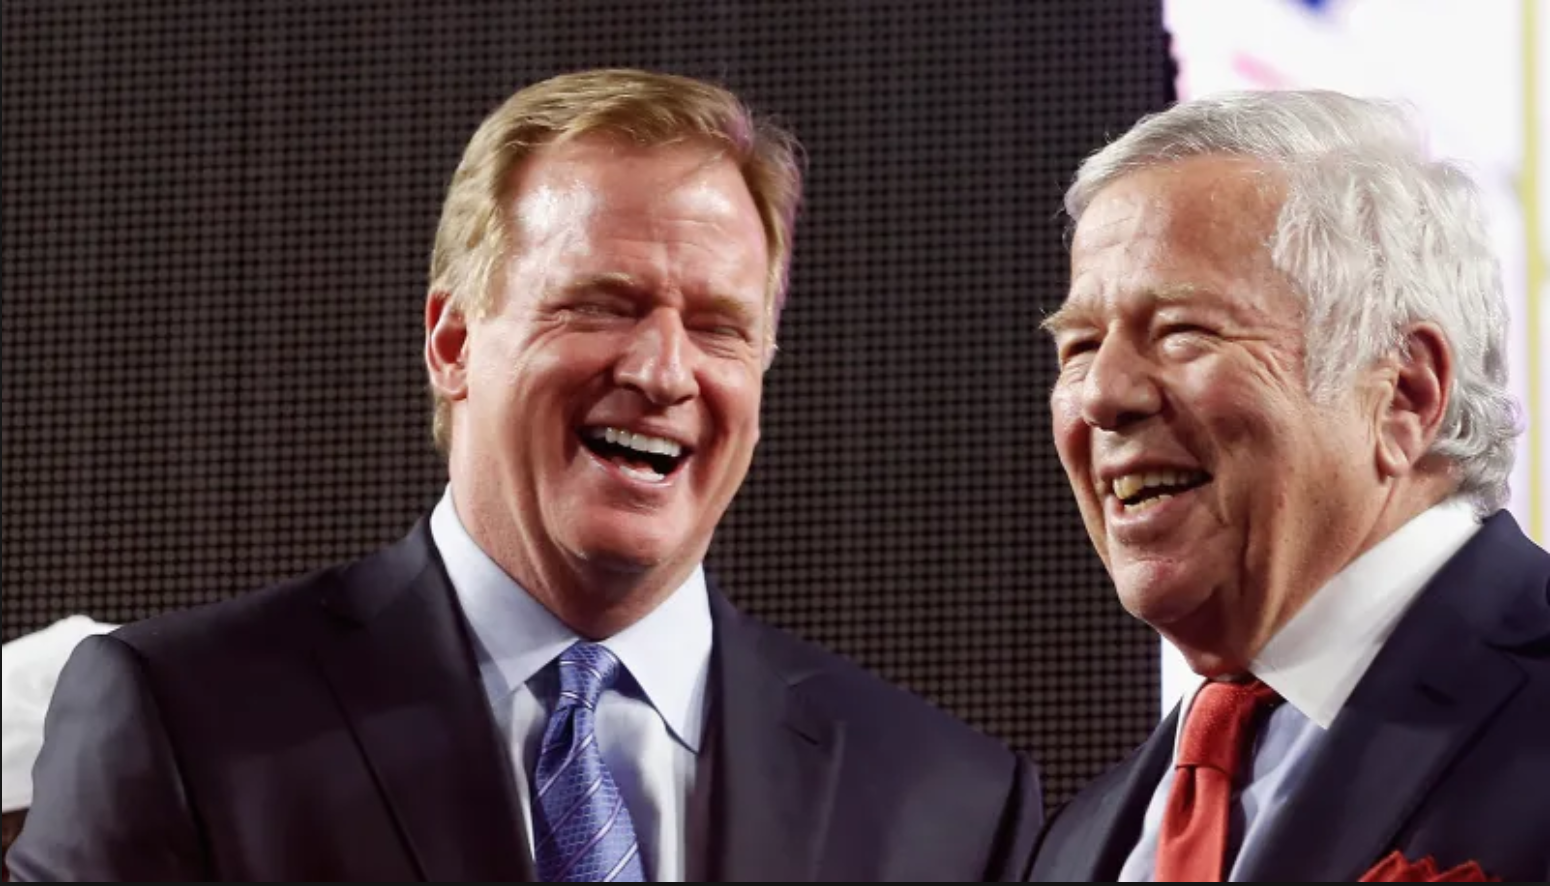 This Robert Kraft News Has Roger Goodell's Clown Hands All Over It